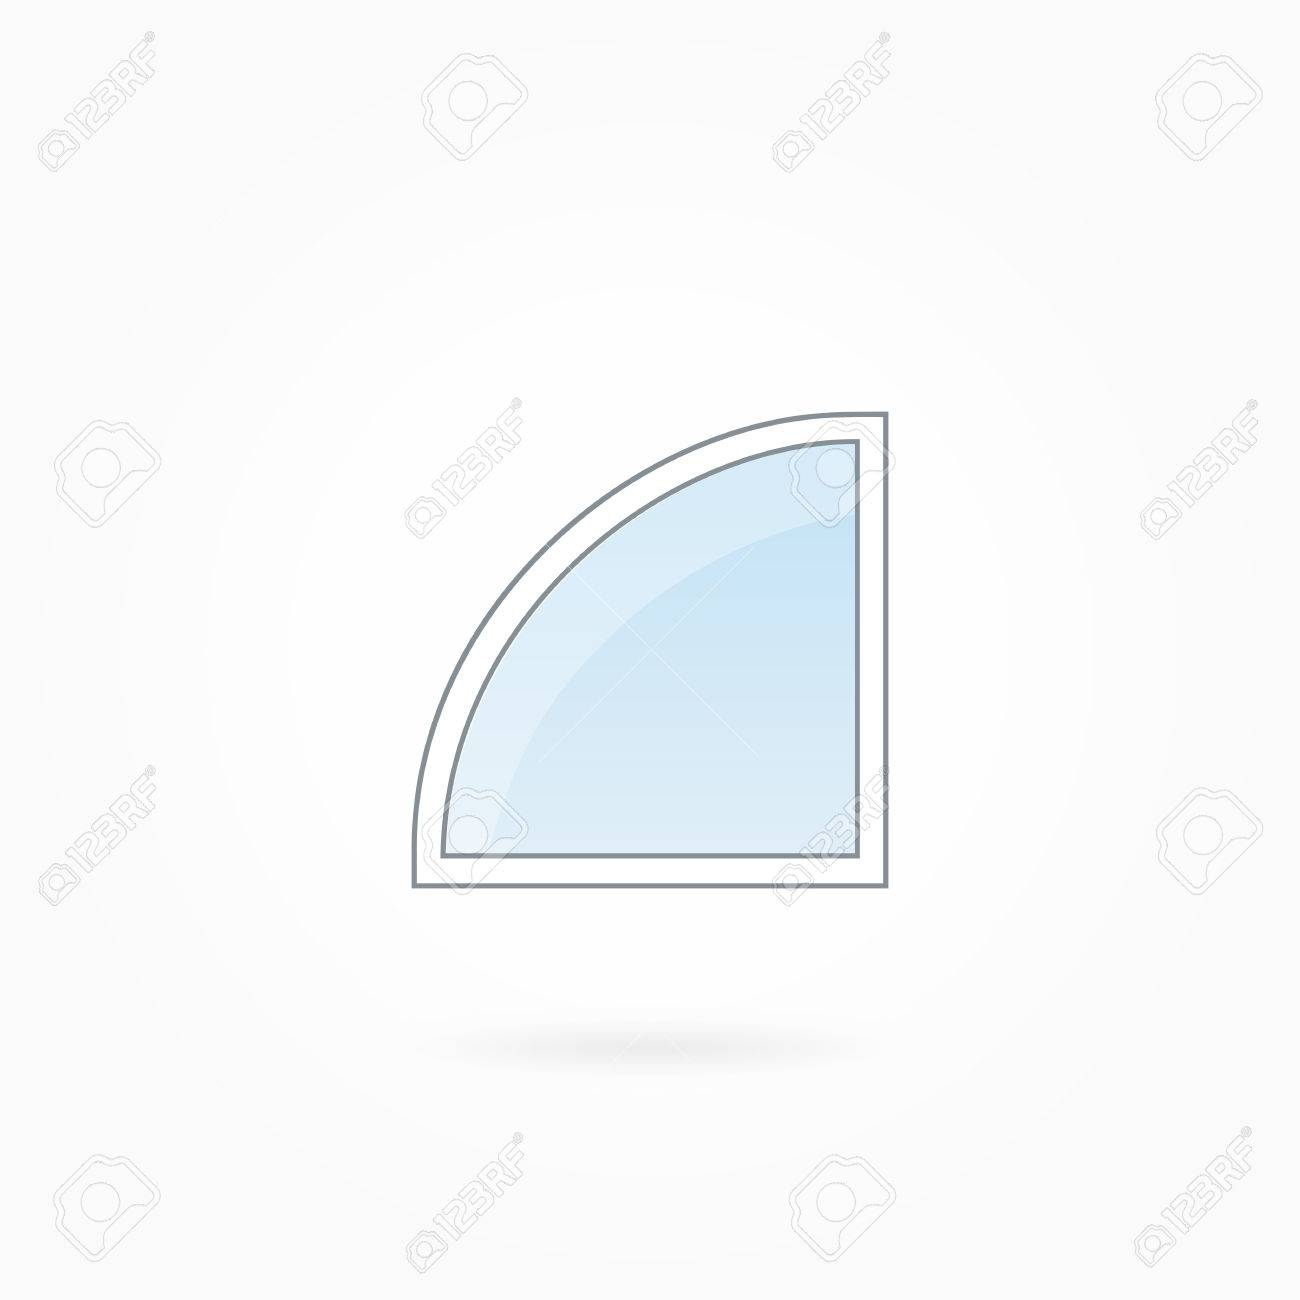 Window Frame Vector Illustration, Single Rounded Angular Closed ...